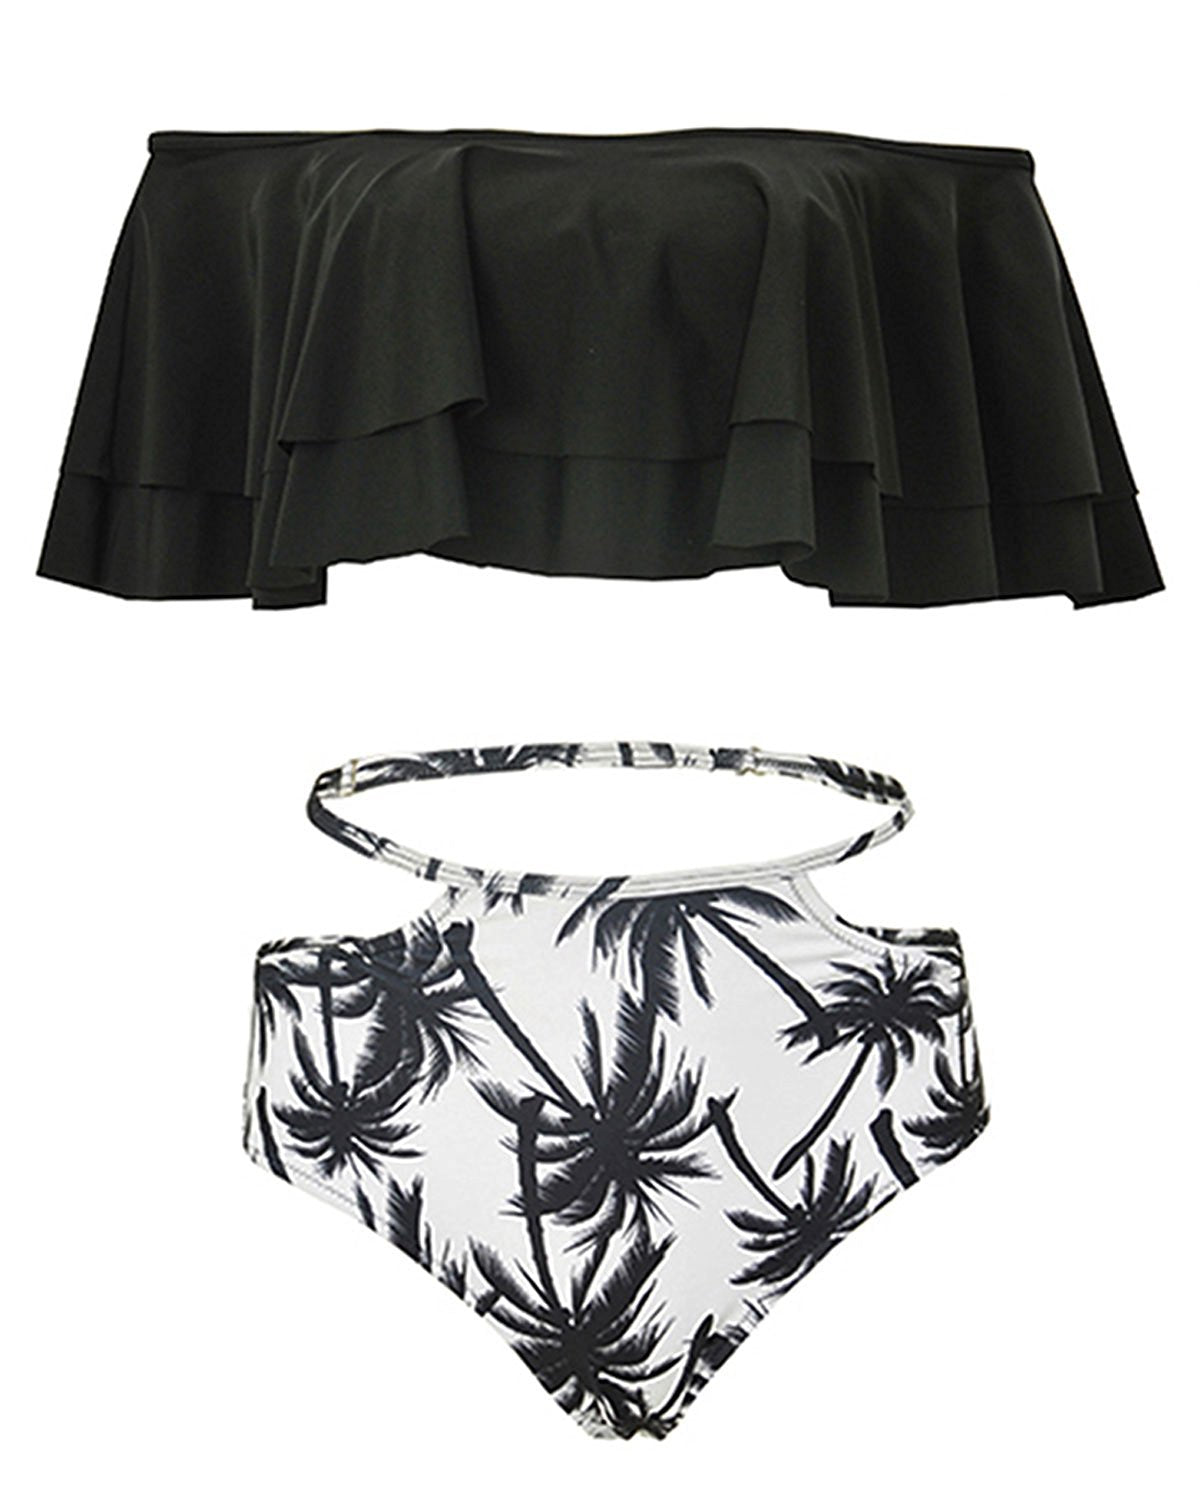 506ebd4a269 ... Women Two Piece Off Shoulder Ruffled Flounce Crop Bikini Top With Print  Cut Out Bottoms ...